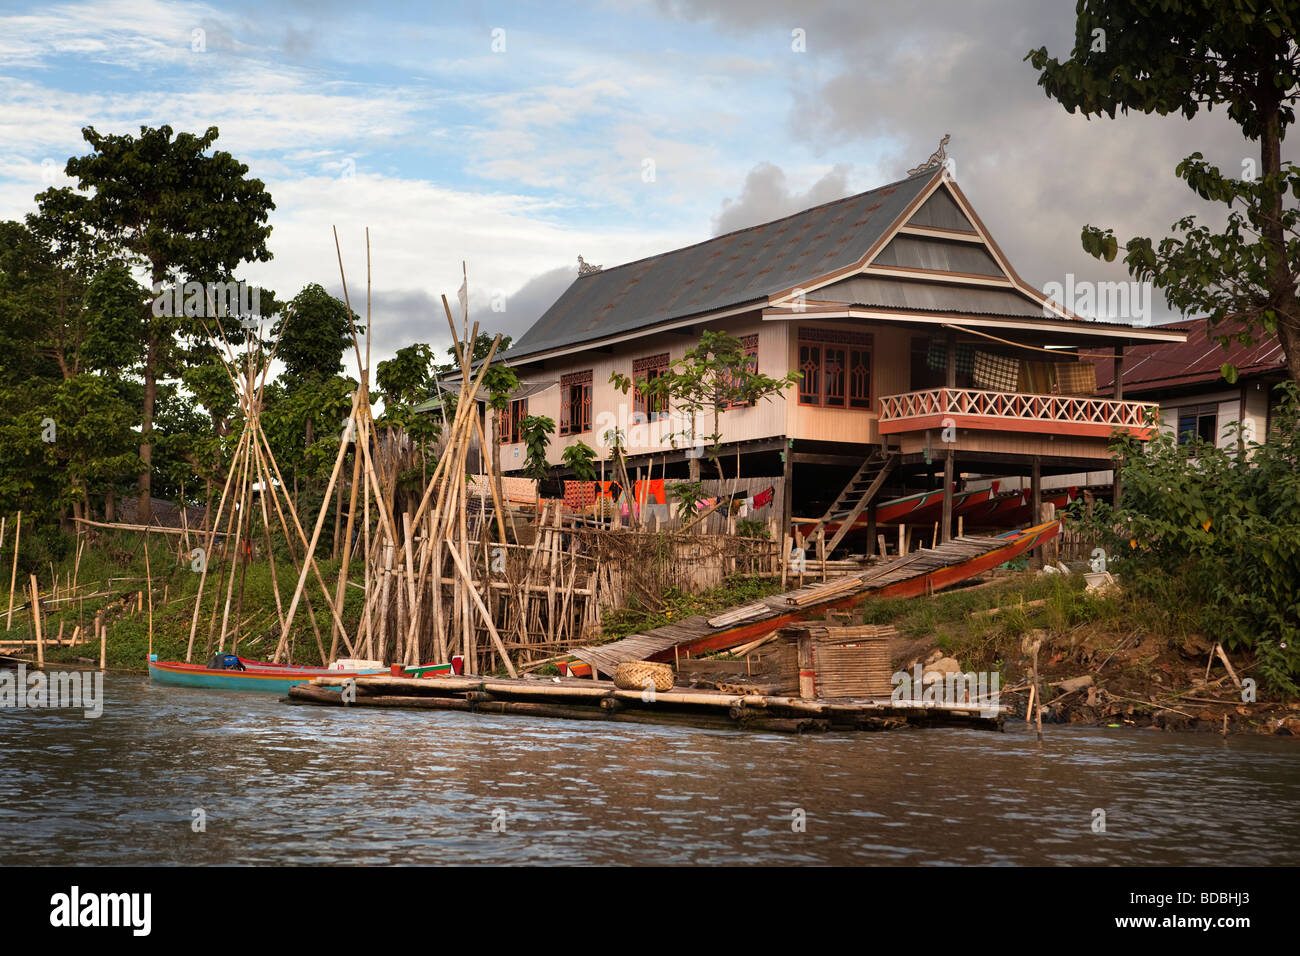 Indonesia Sulawesi Sengkang substantial wooden house on banks of Sungai Walanae river - Stock Image